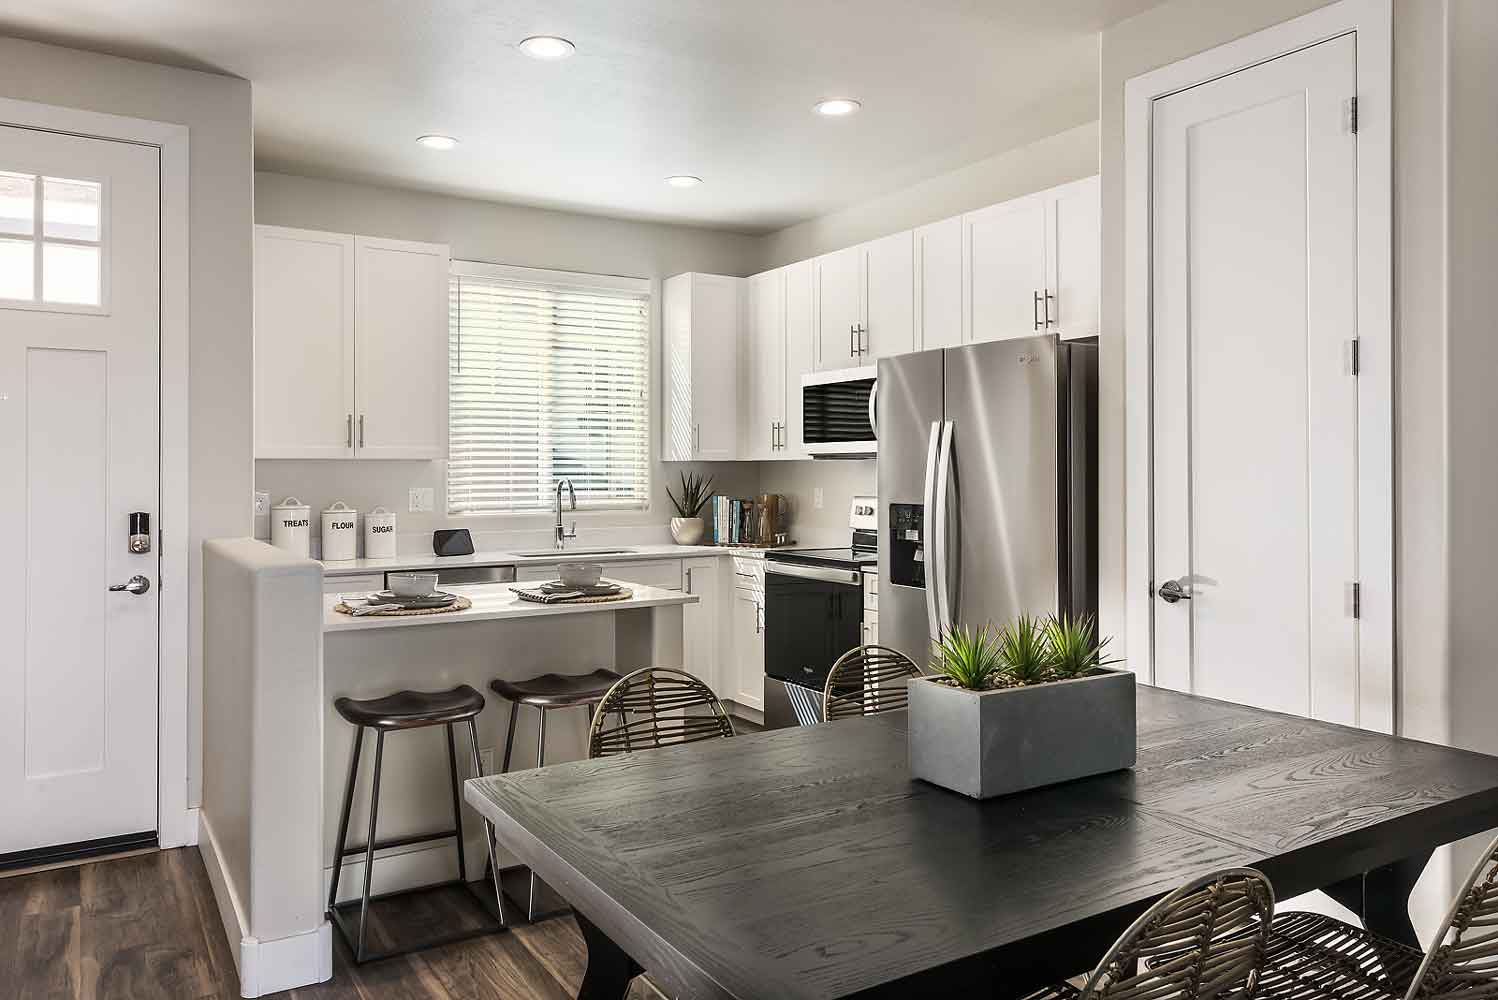 Fully Equipped Kitchen at Village at Harvard Crossing Apartments in Goodyear, AZ